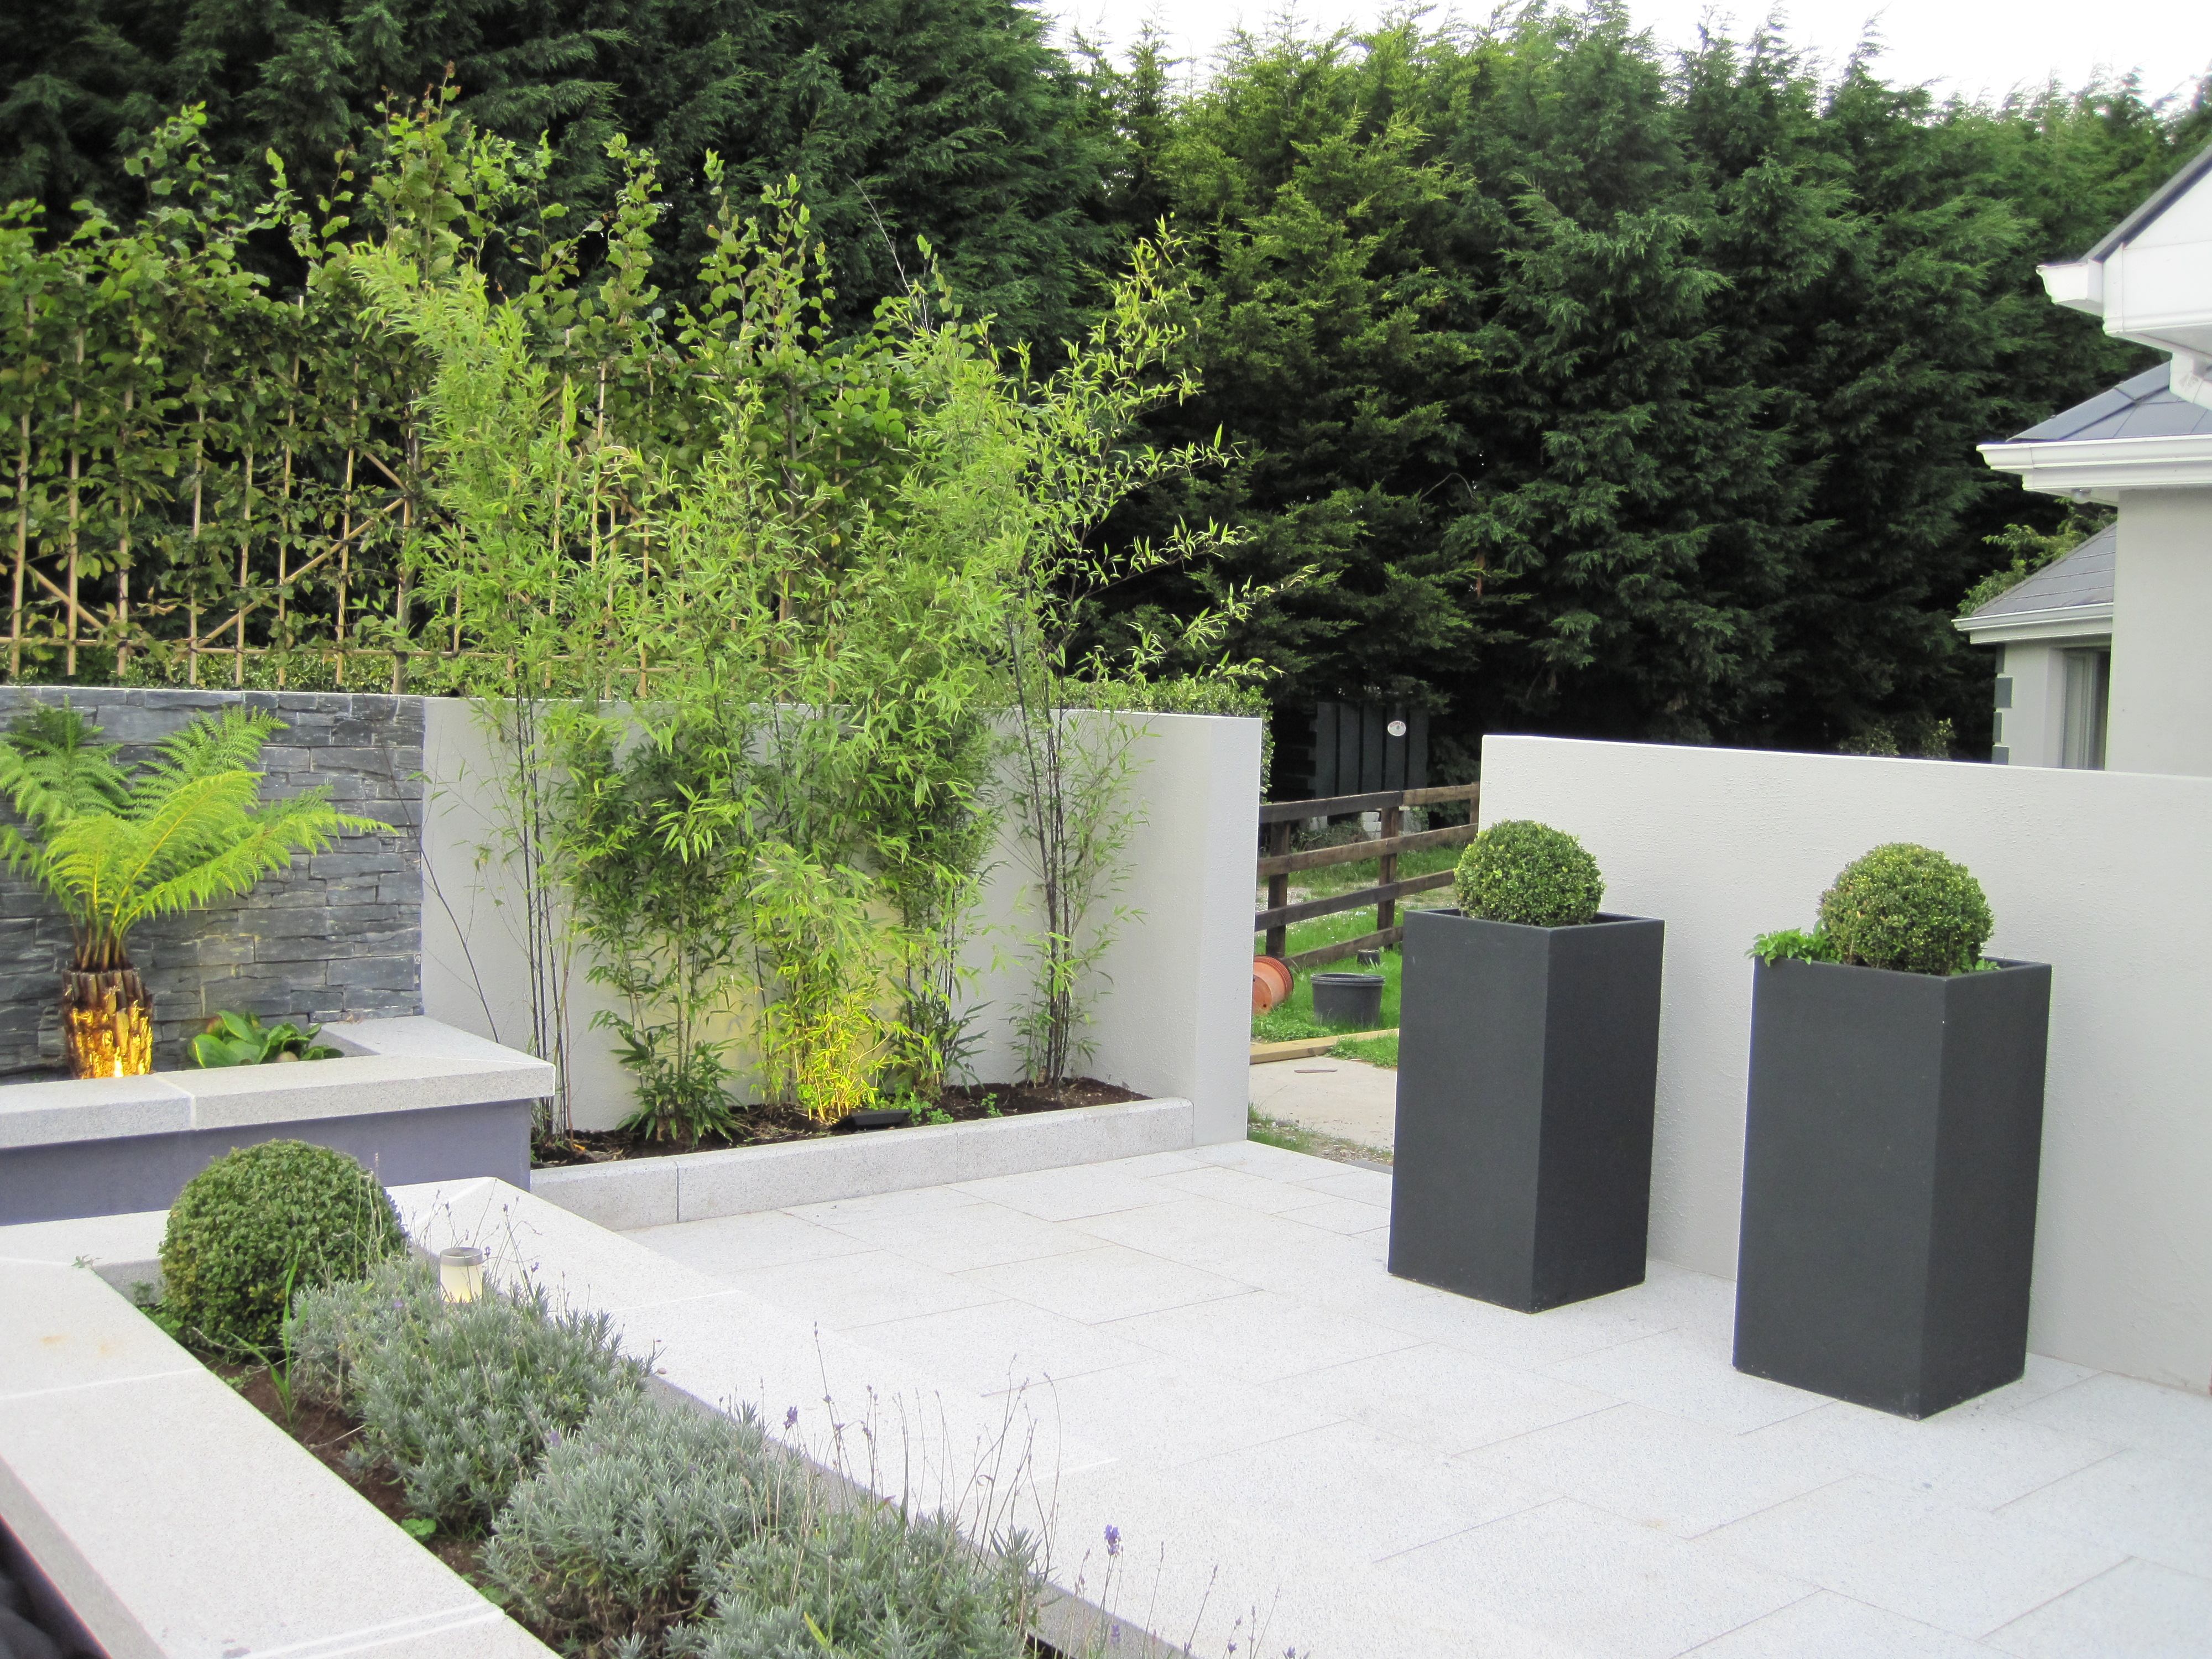 Garden Design Ideas Inspiration & Advice For All Styles Of Garden